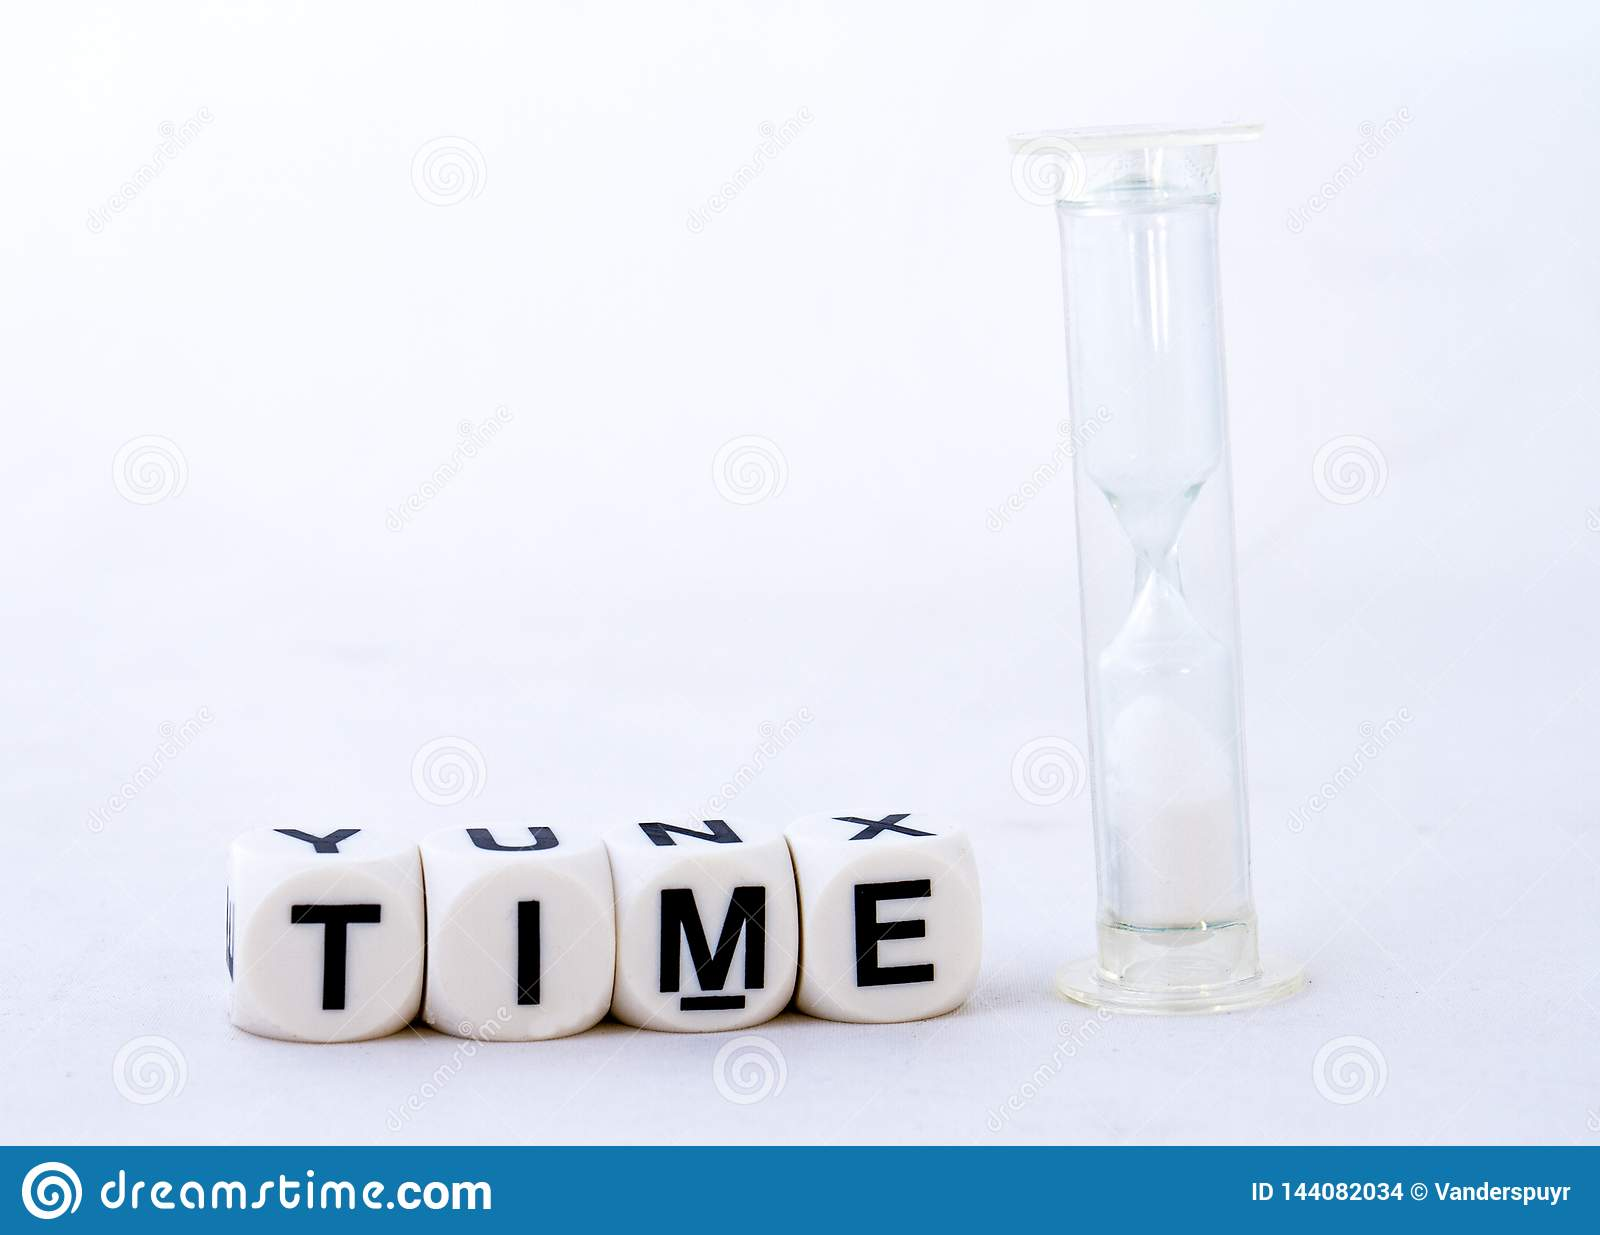 The term time on a white background - concept image